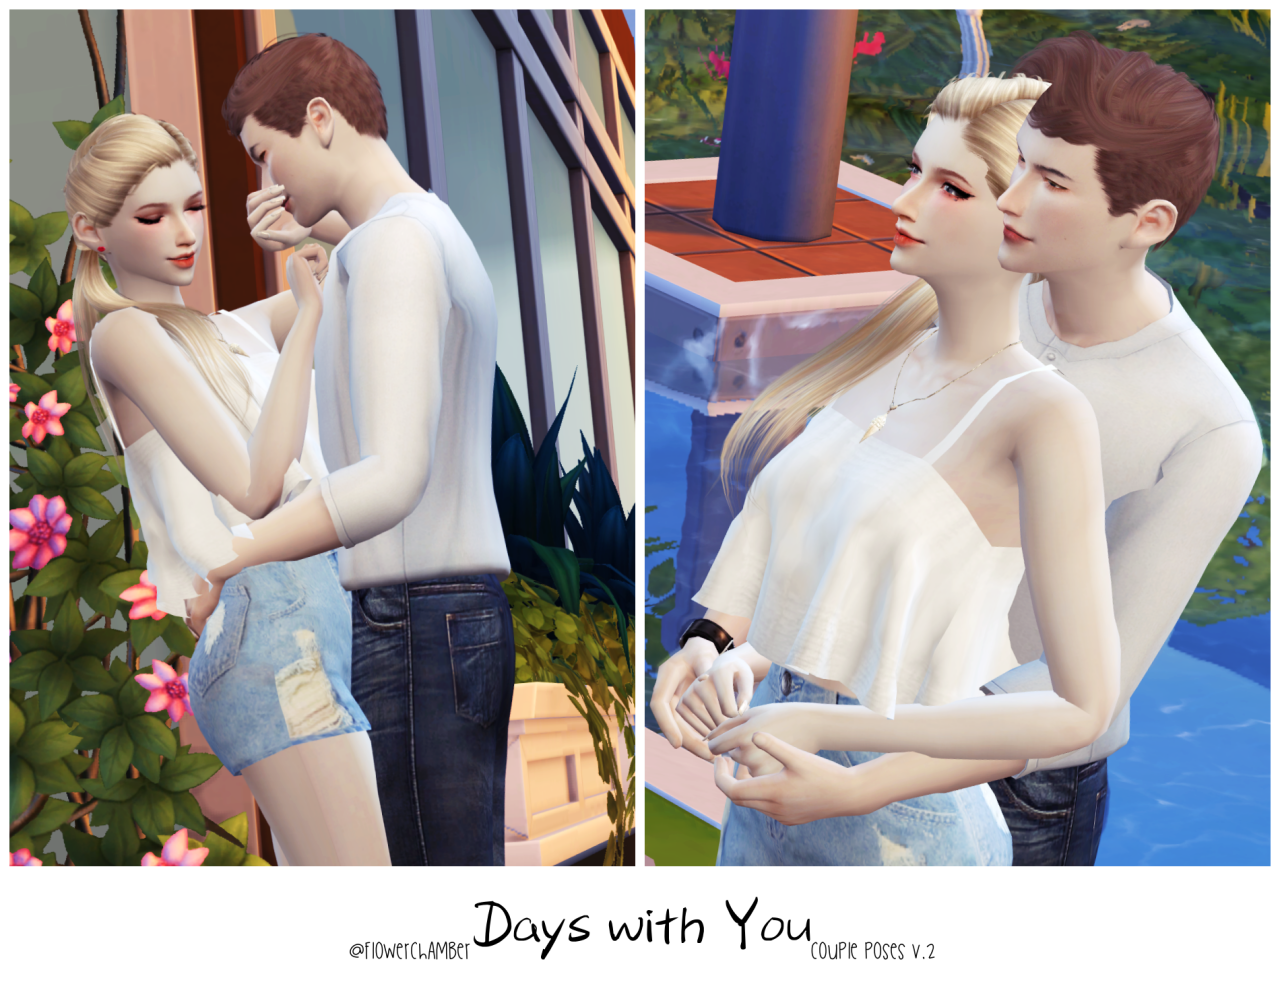 Days with You (Couple poses set v.2) by flowerchamber